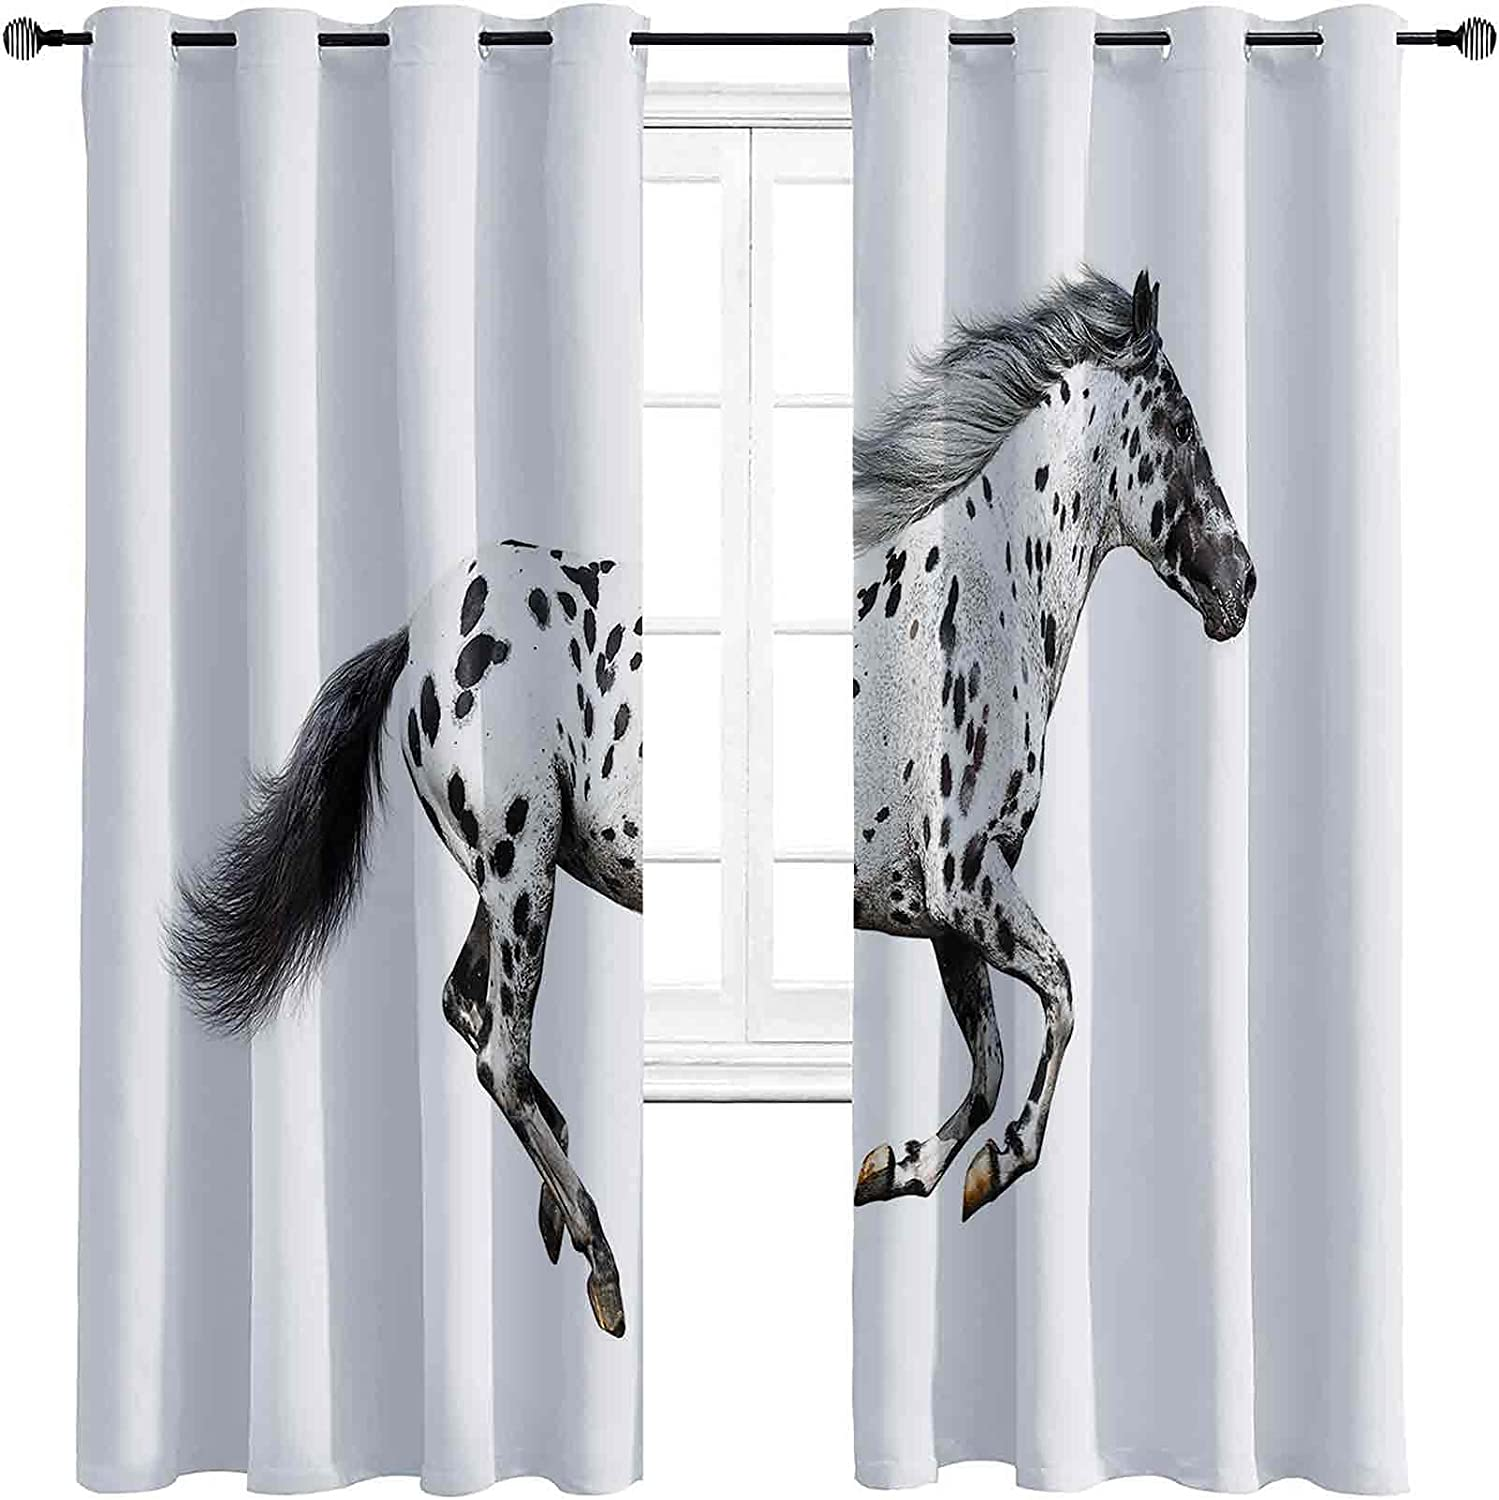 Horse Decor Max 51% OFF Room Darkened Insulation Curtain A Sales Grommet Powerful